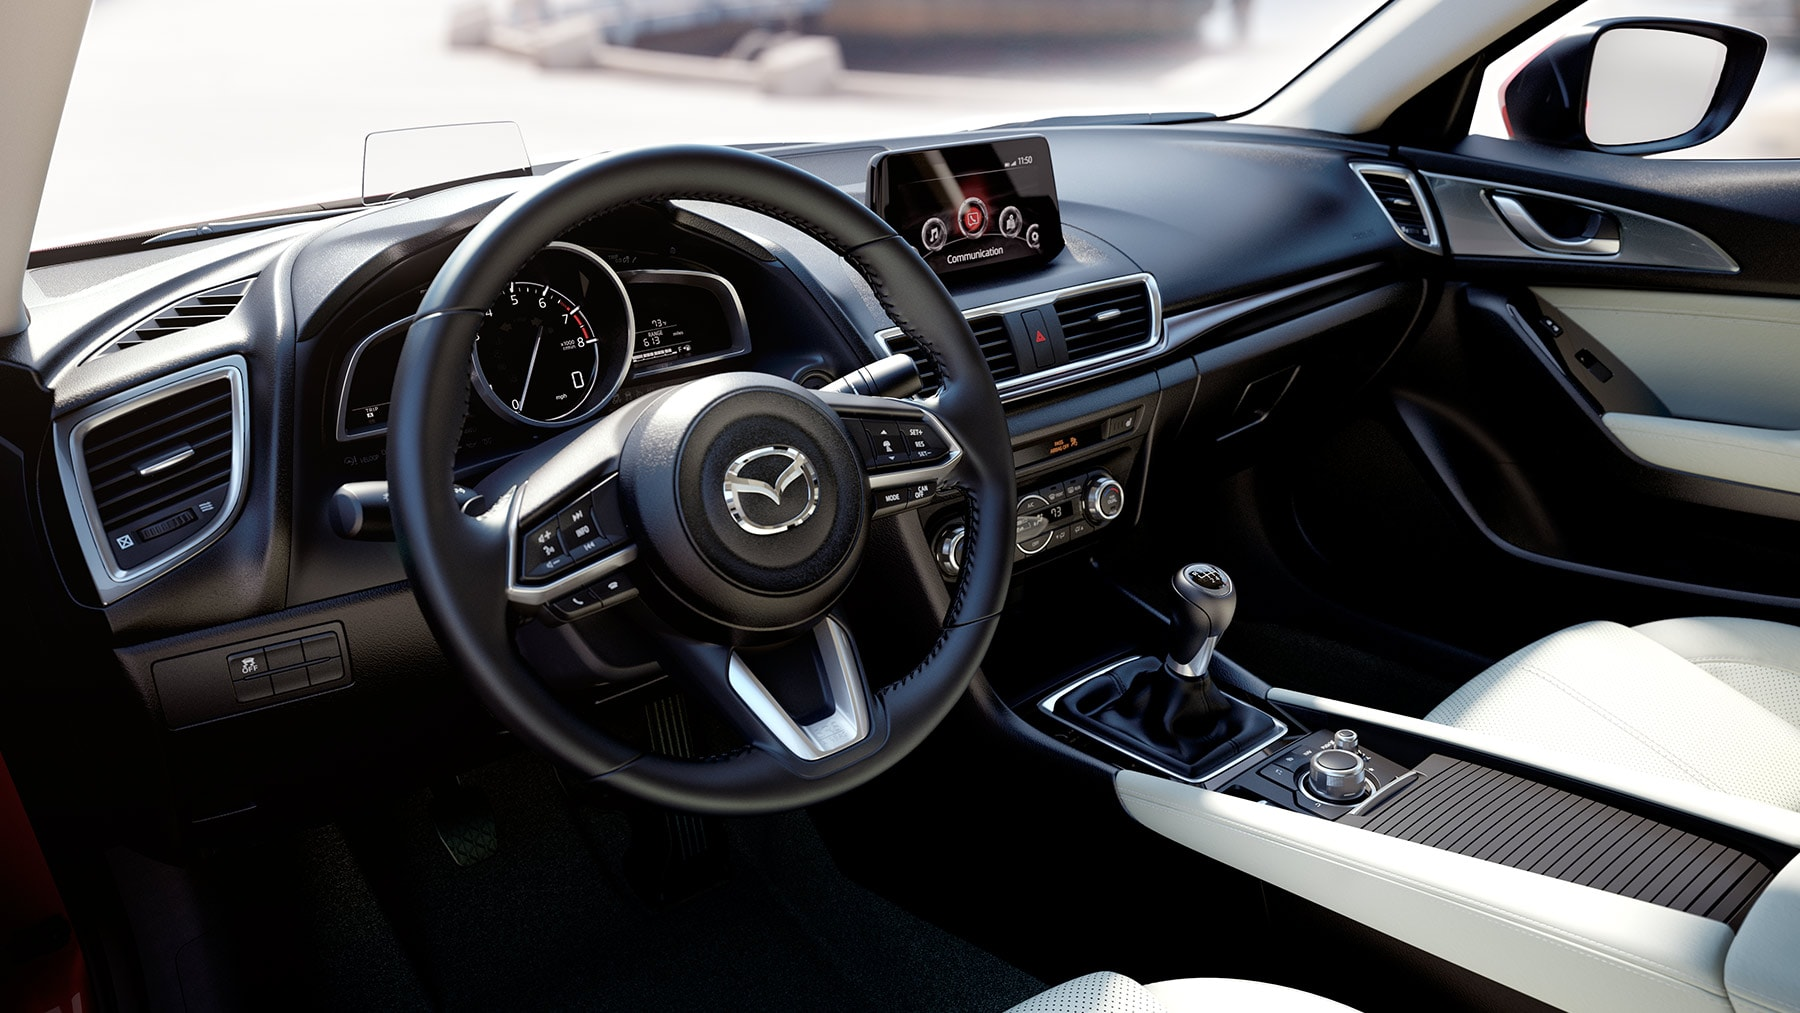 Interior of the 2017 Mazda3